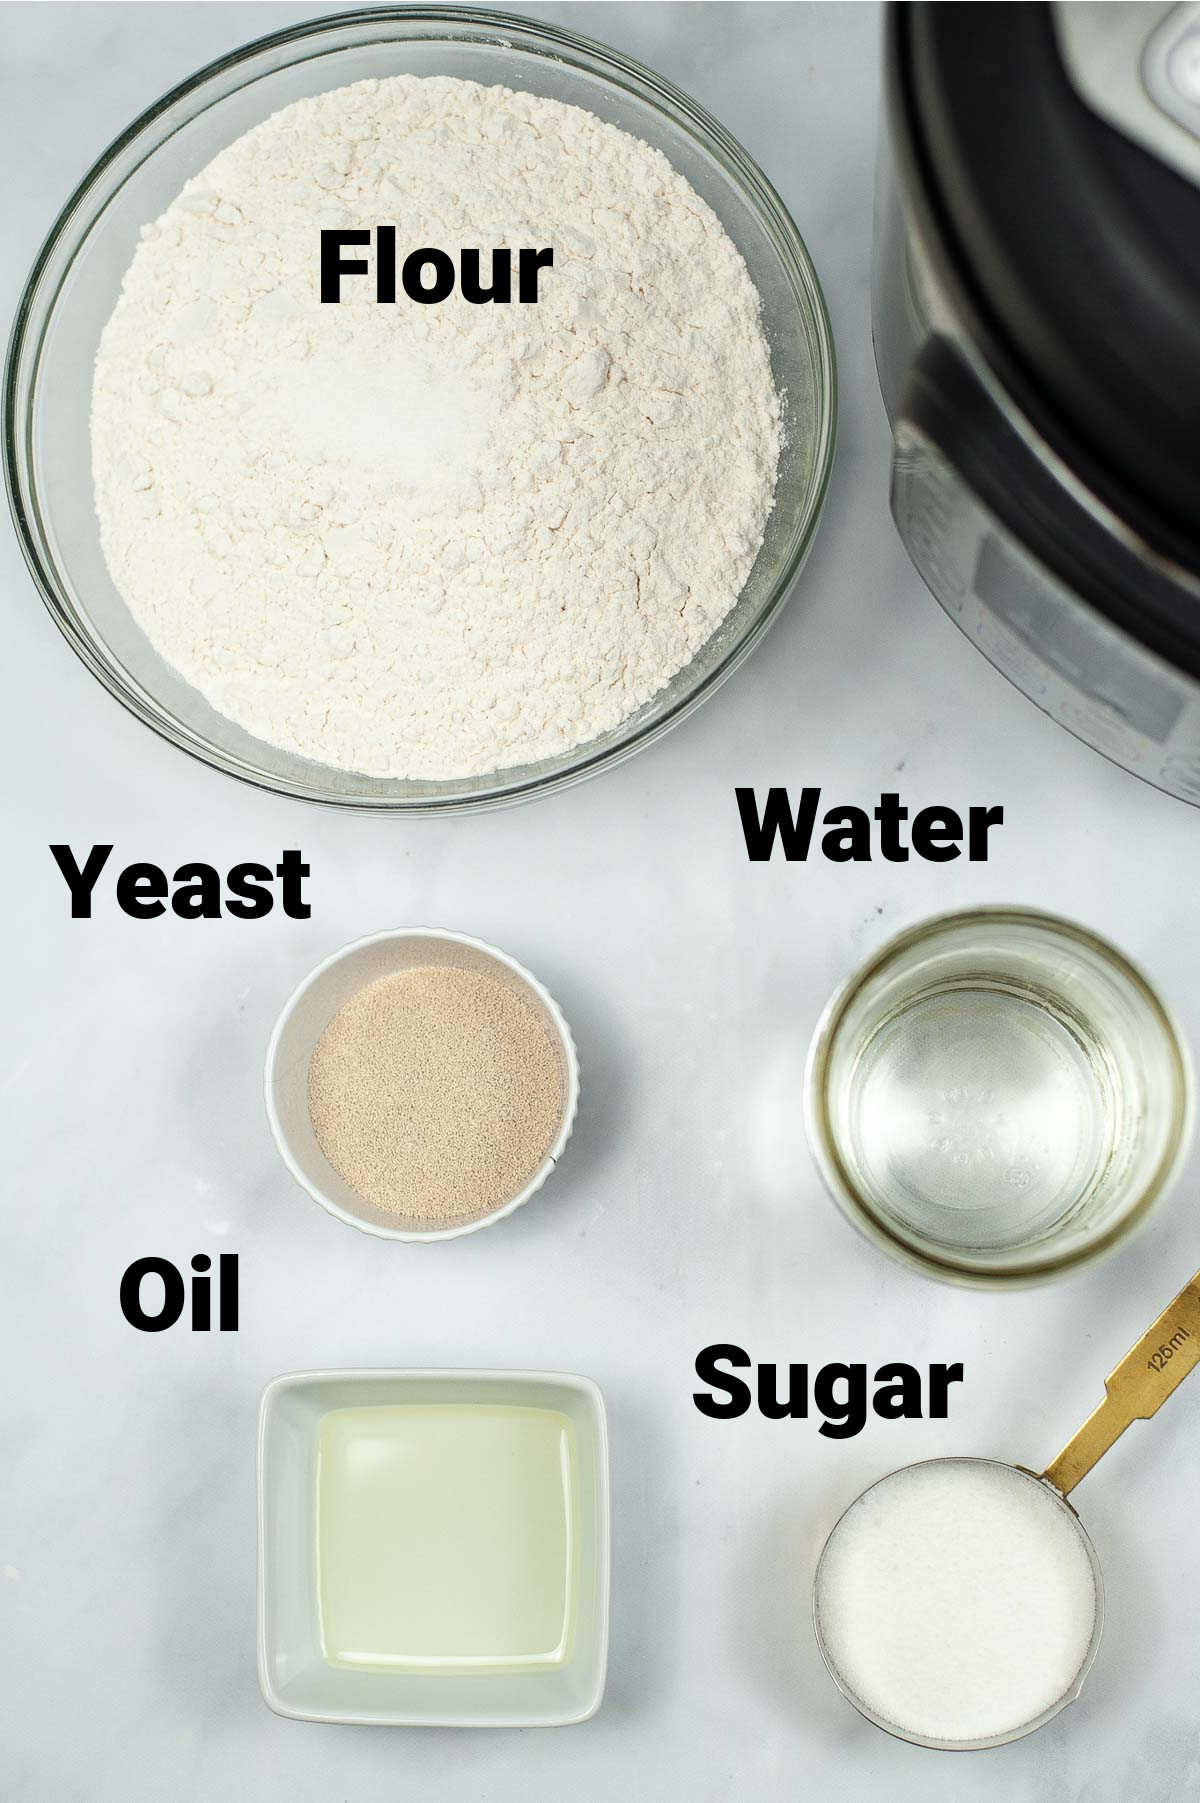 photo showing all of the ingredients on table with labels.